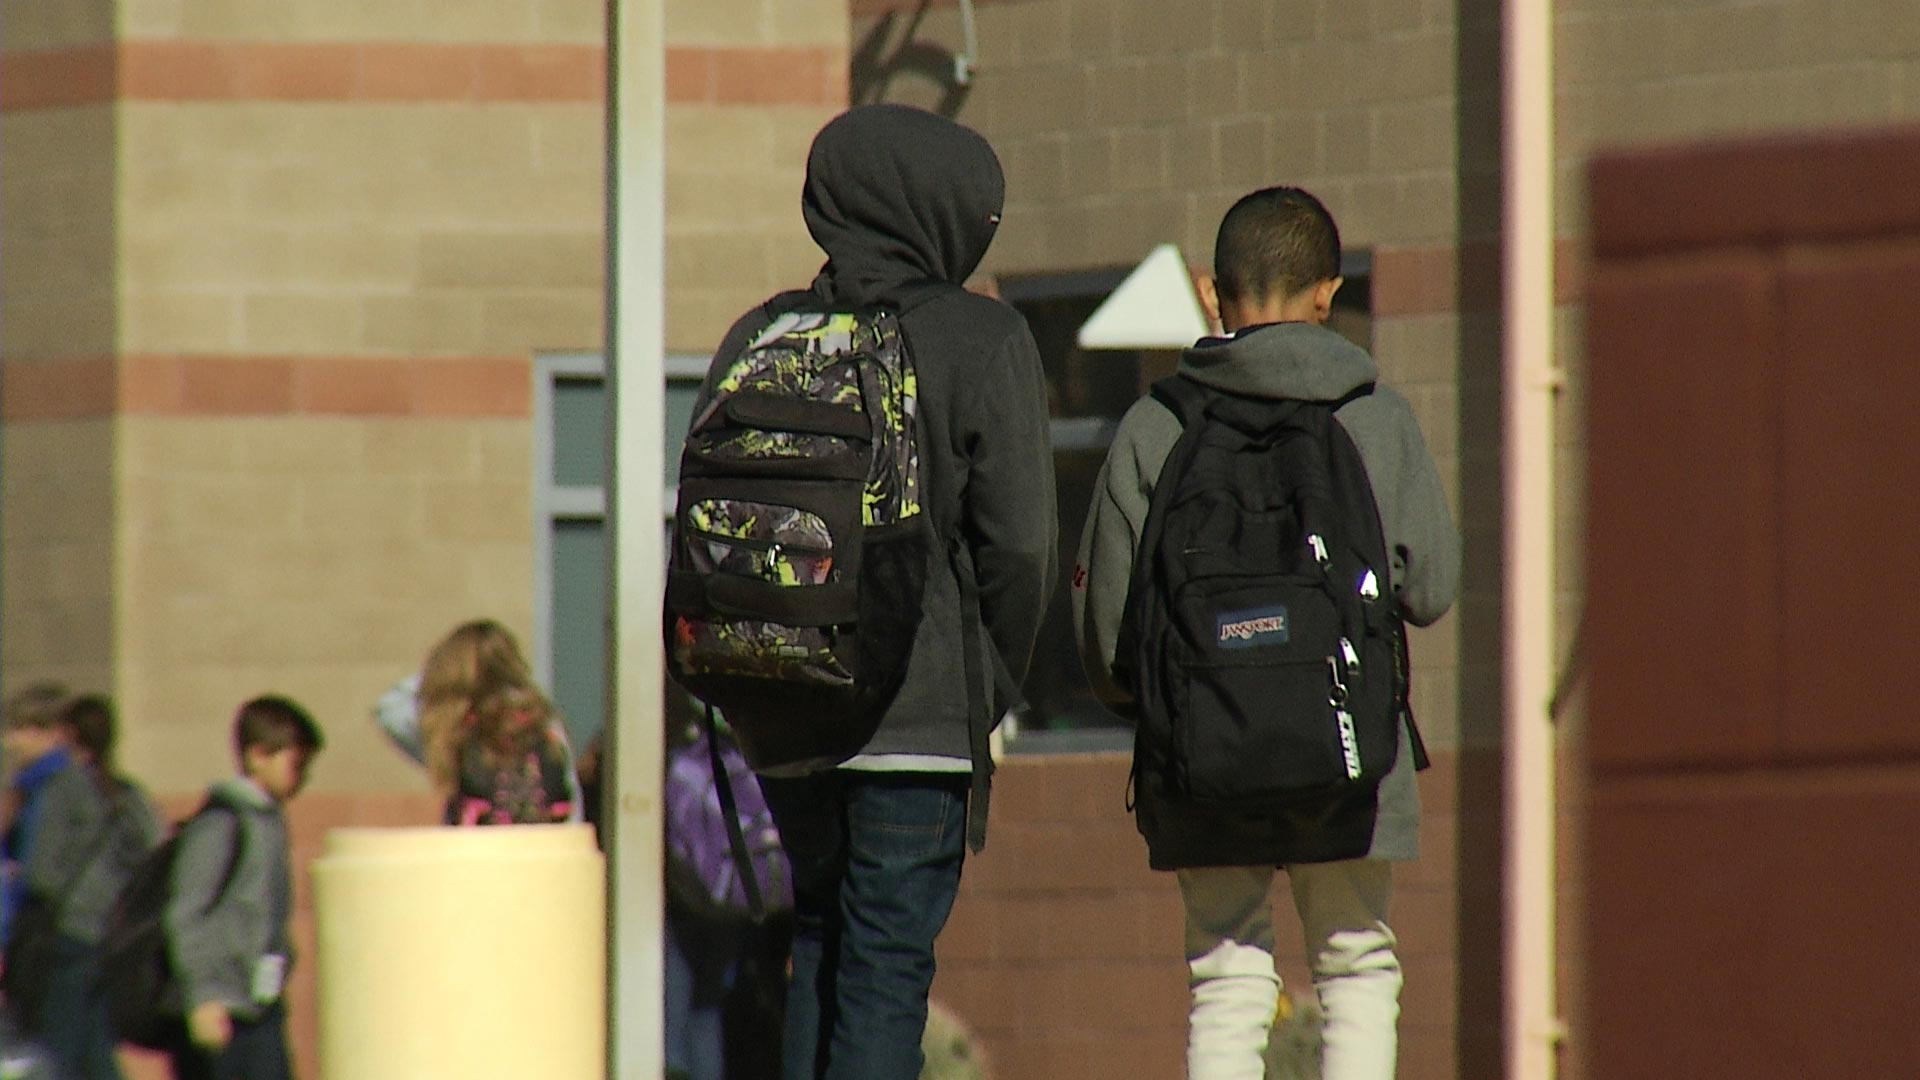 A file image of two students walking on a campus in Pima County.